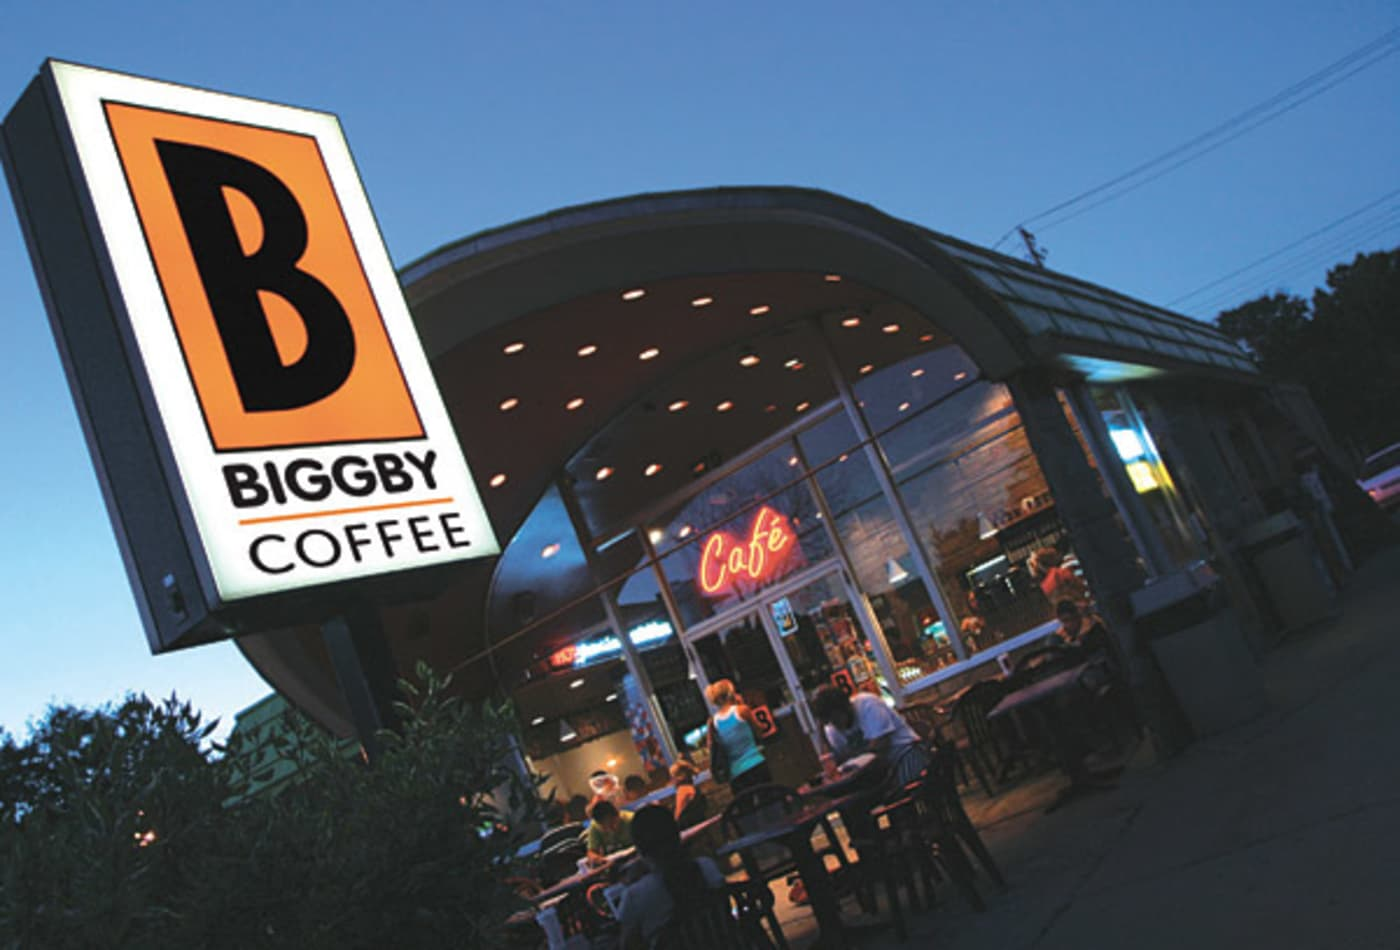 coffee_fastest_growing_biggby.jpg